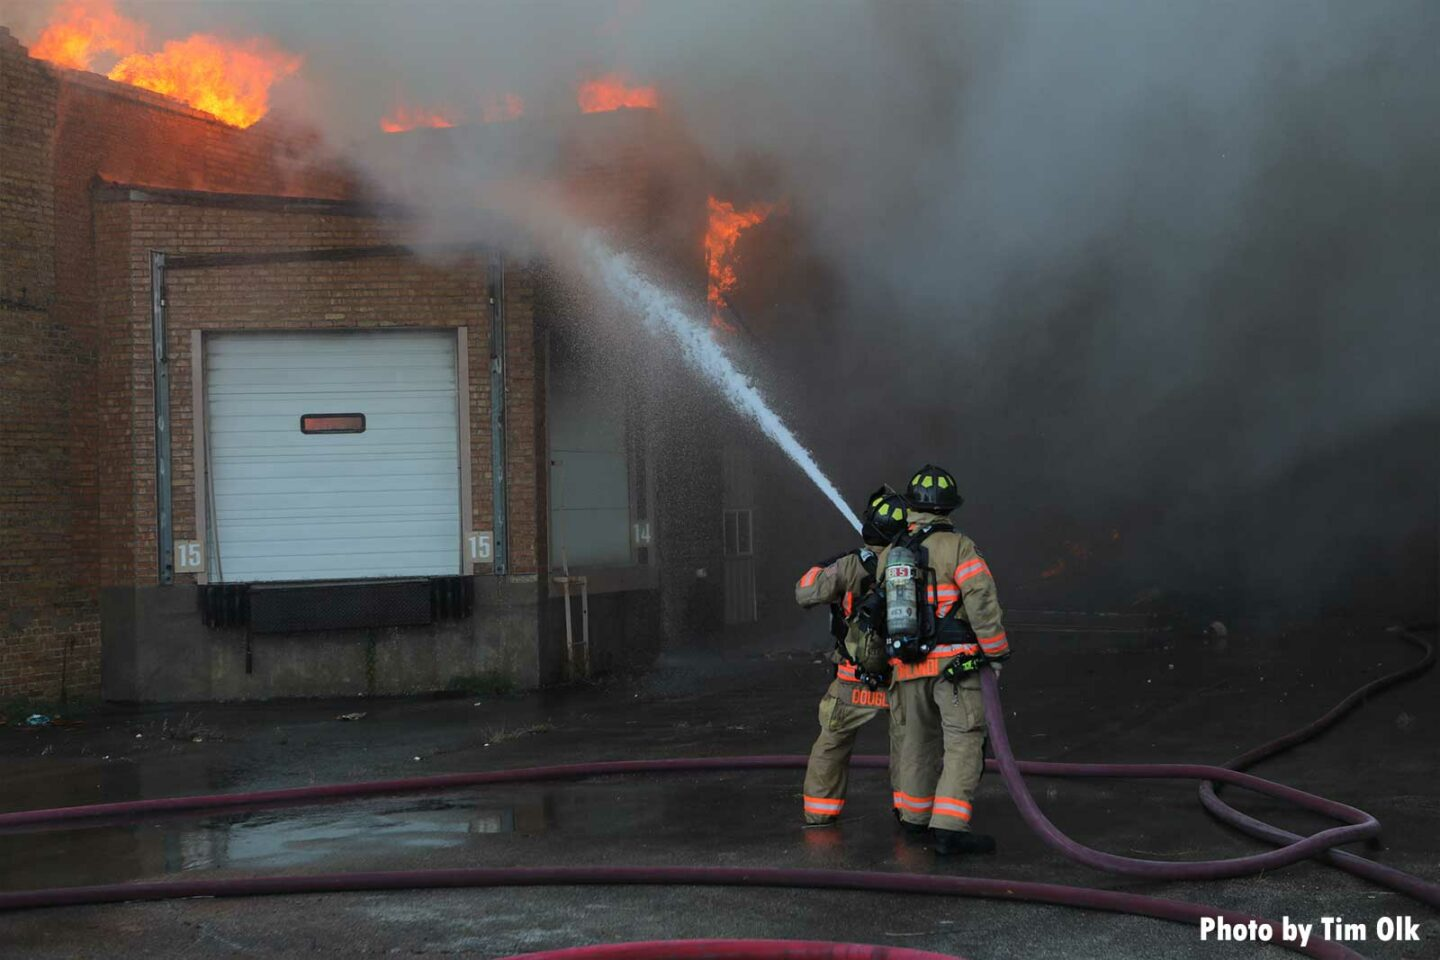 Firefighters use hoseline on exterior of the building